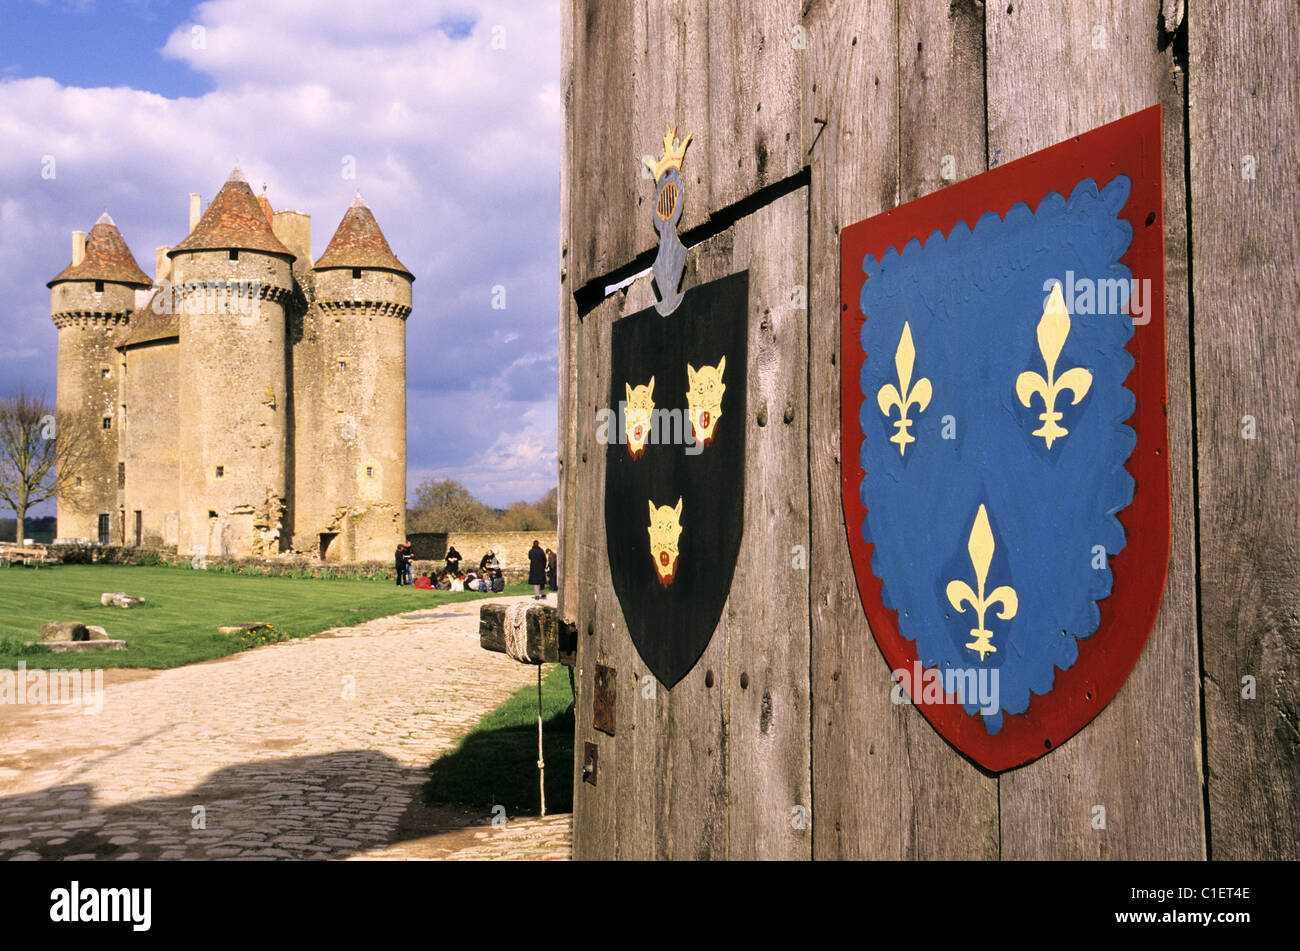 France, Indre, the Berry of George Sand, the feudal castle of Sarzay in Sarzay evoked in the Miller of Angibault - Stock Image